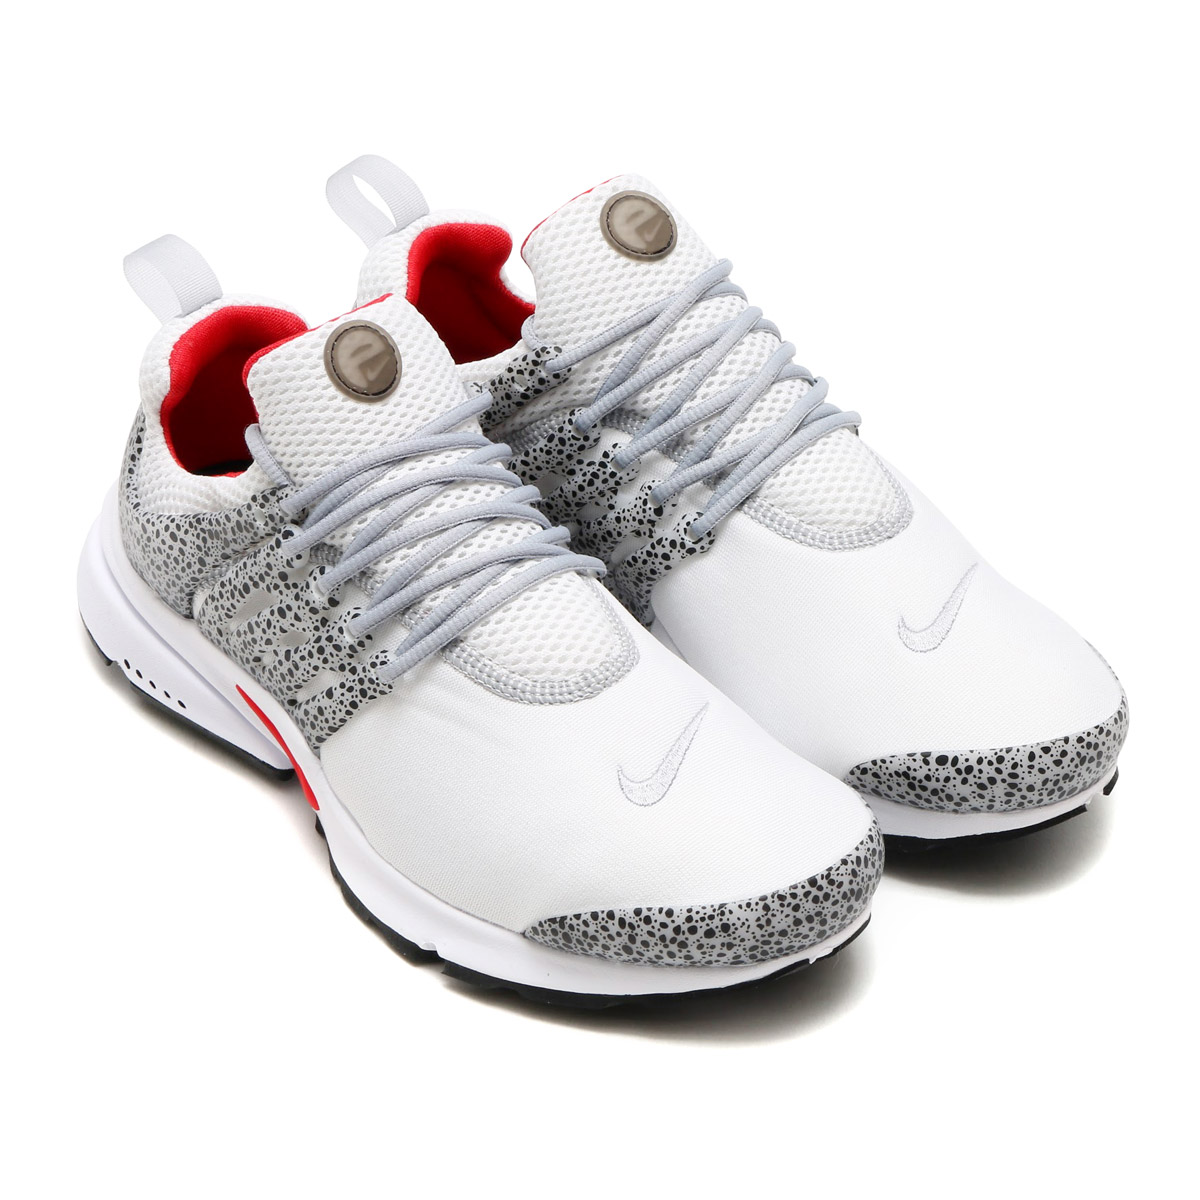 NIKE AIR PRESTO QS (나이키 에어 프레스토 QS) (WHITE/UNIVERSITY RED-PURE PLATINUM-BLACK) 17 SU-S